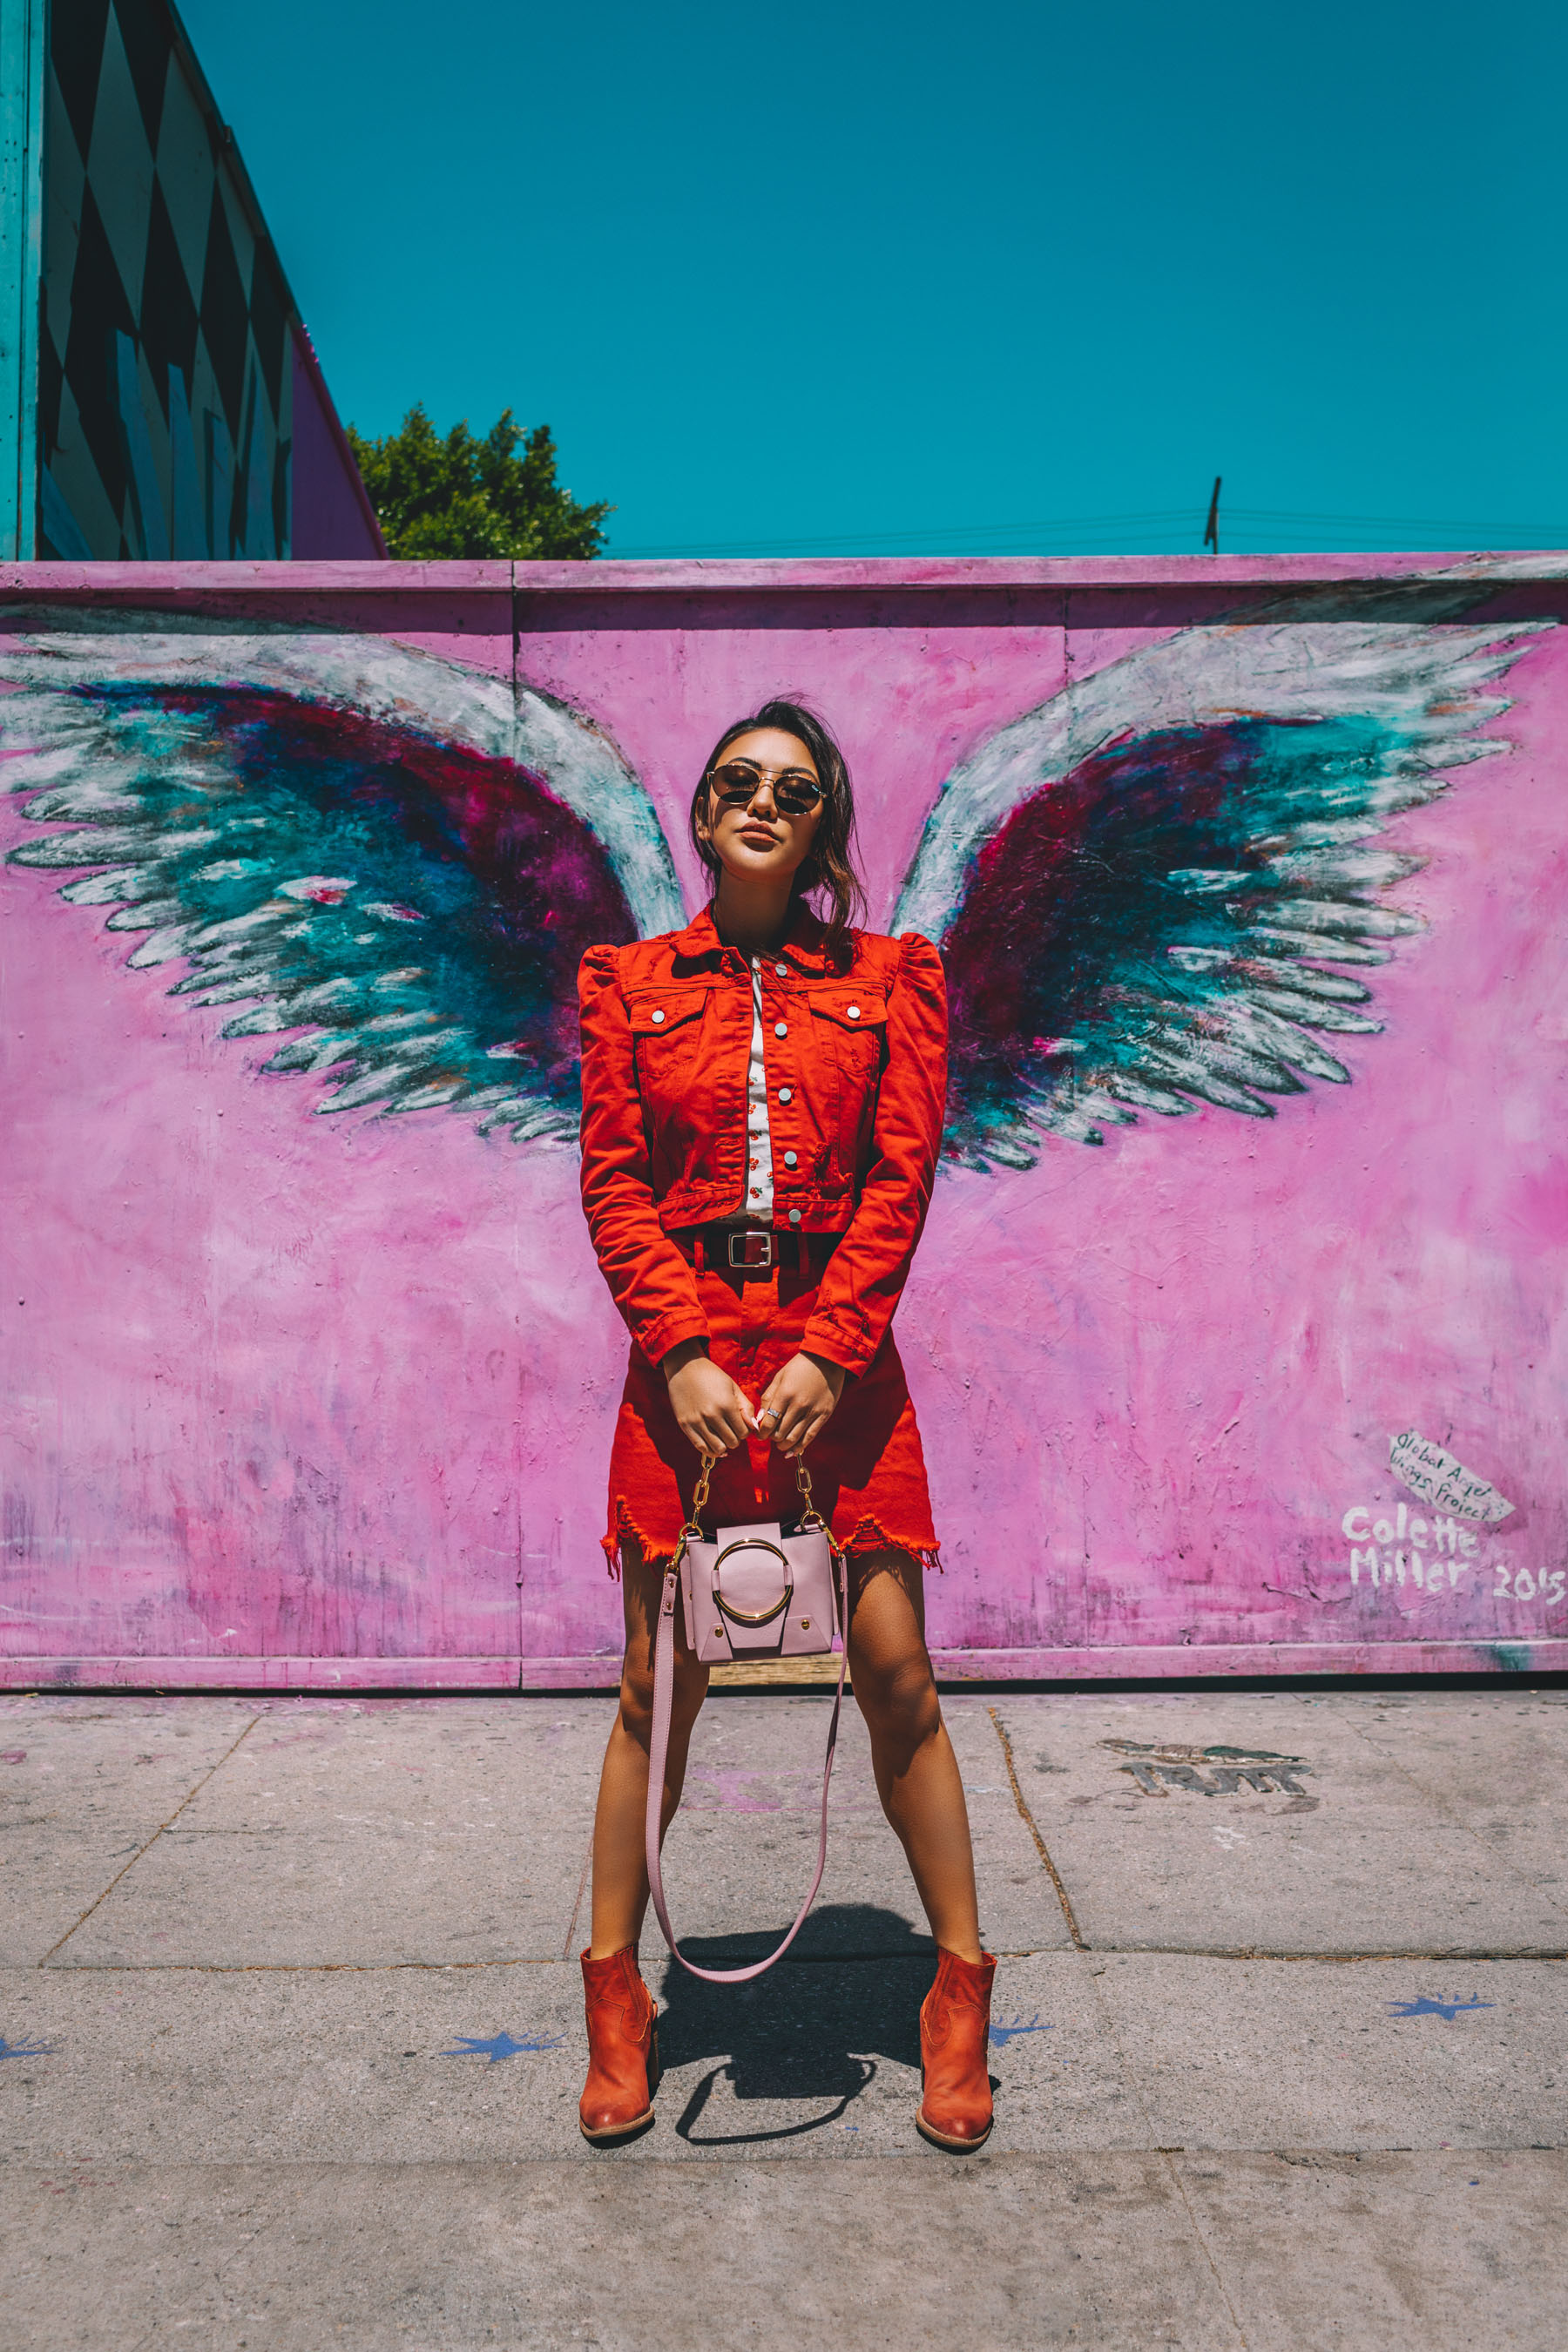 Bold Festival Style - Coachella Outfits Round Up, Red denim oufit, Los Angeles Graffiti Wing Wall // Notjessfashion.com